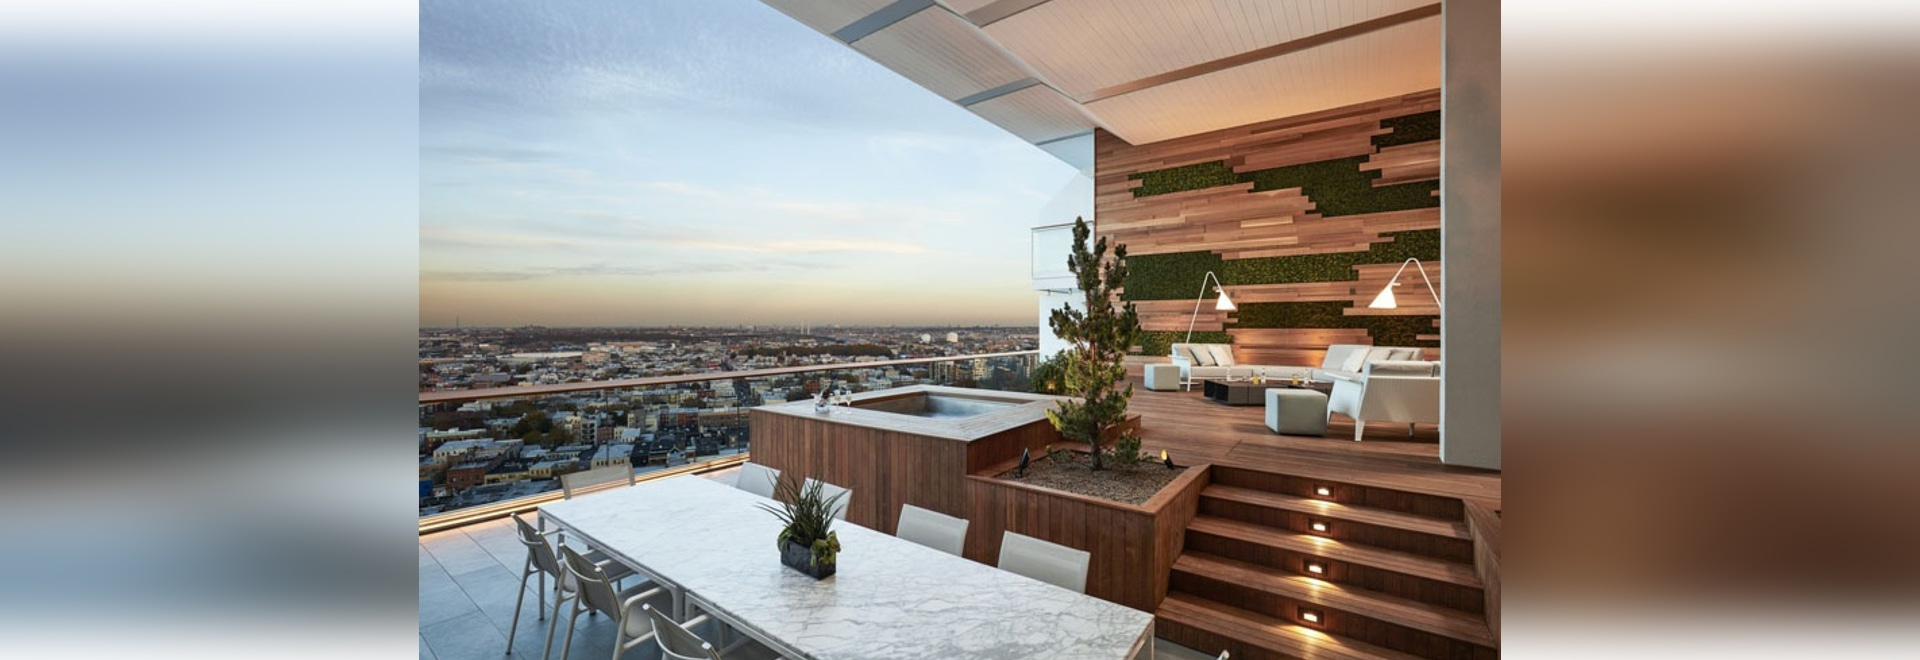 This Balcony With Views Of Brooklyn Was Designed For Outdoor Entertaining